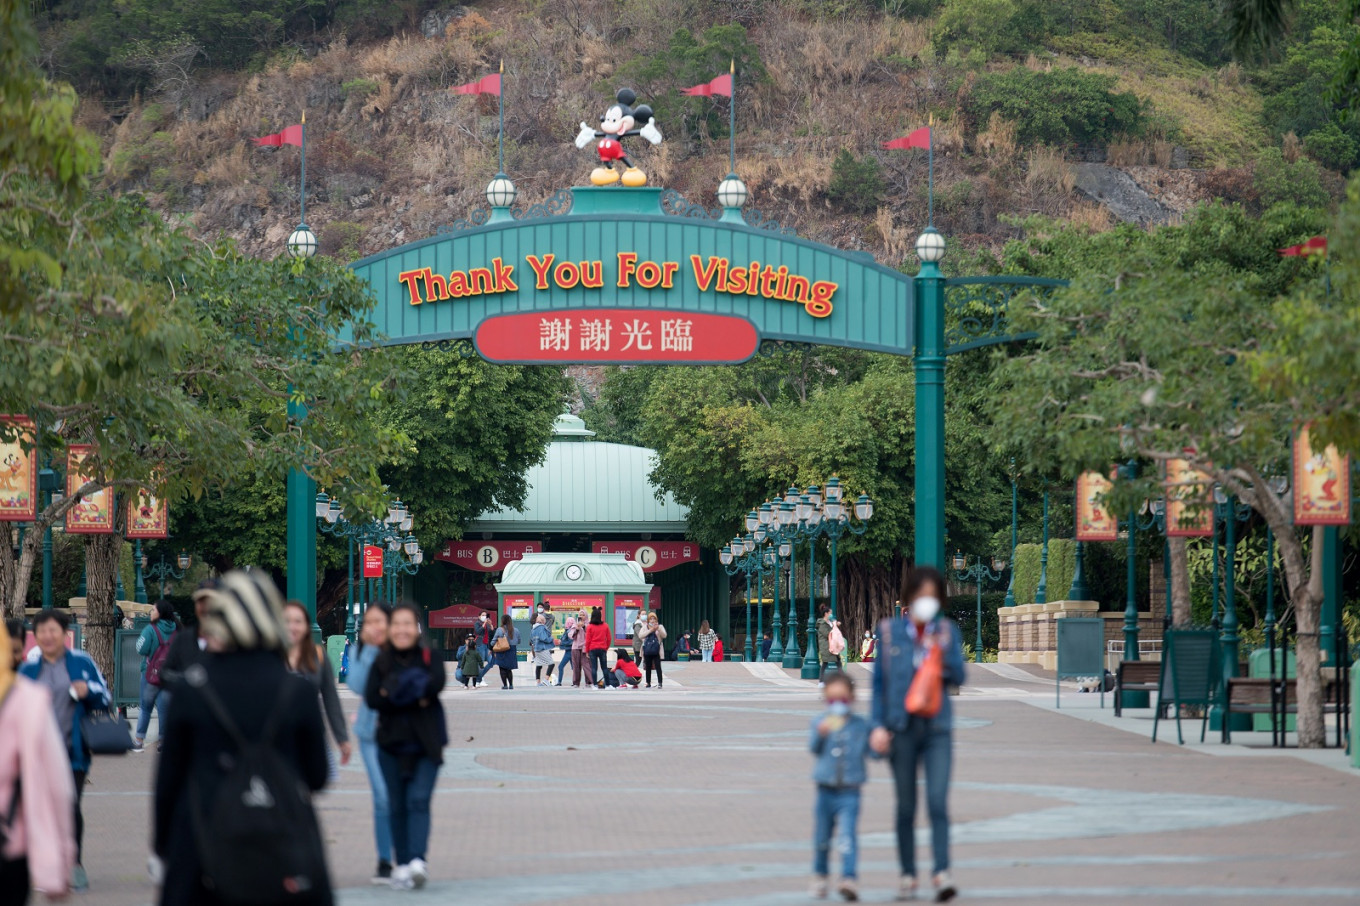 Hong Kong government ends Disney's option for expanding theme park